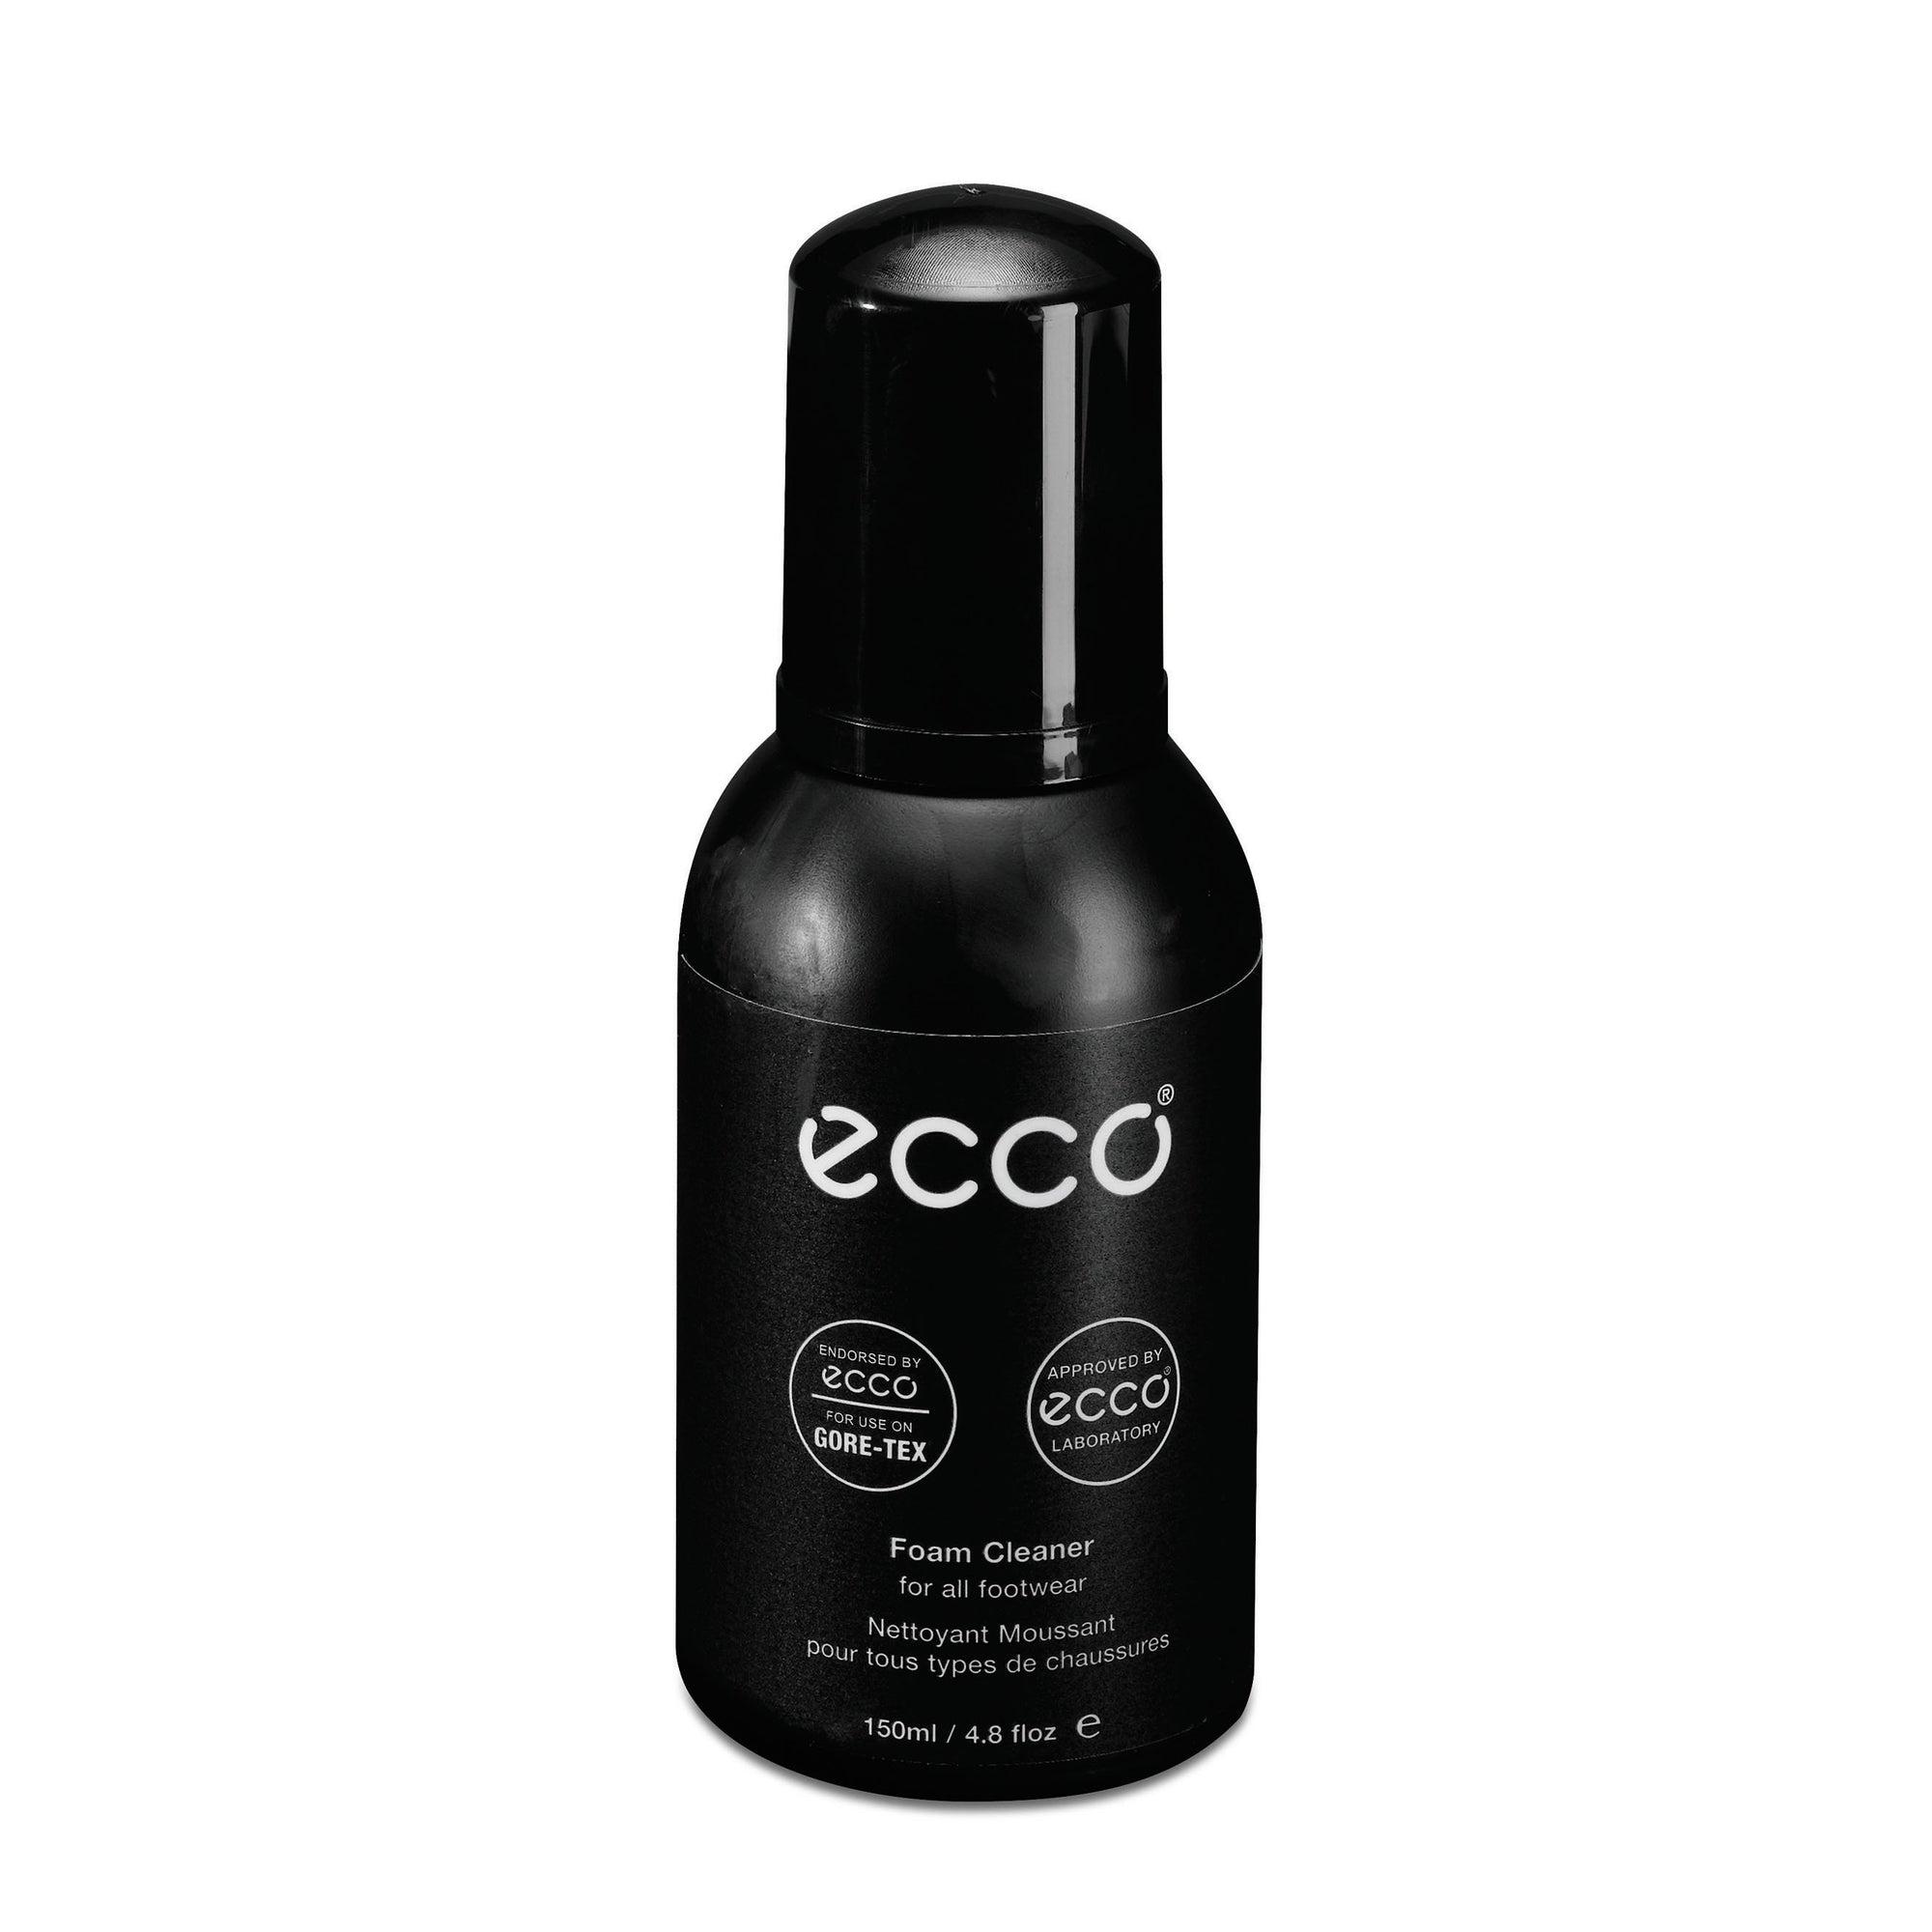 Foam Cleaner Accessories ECCO